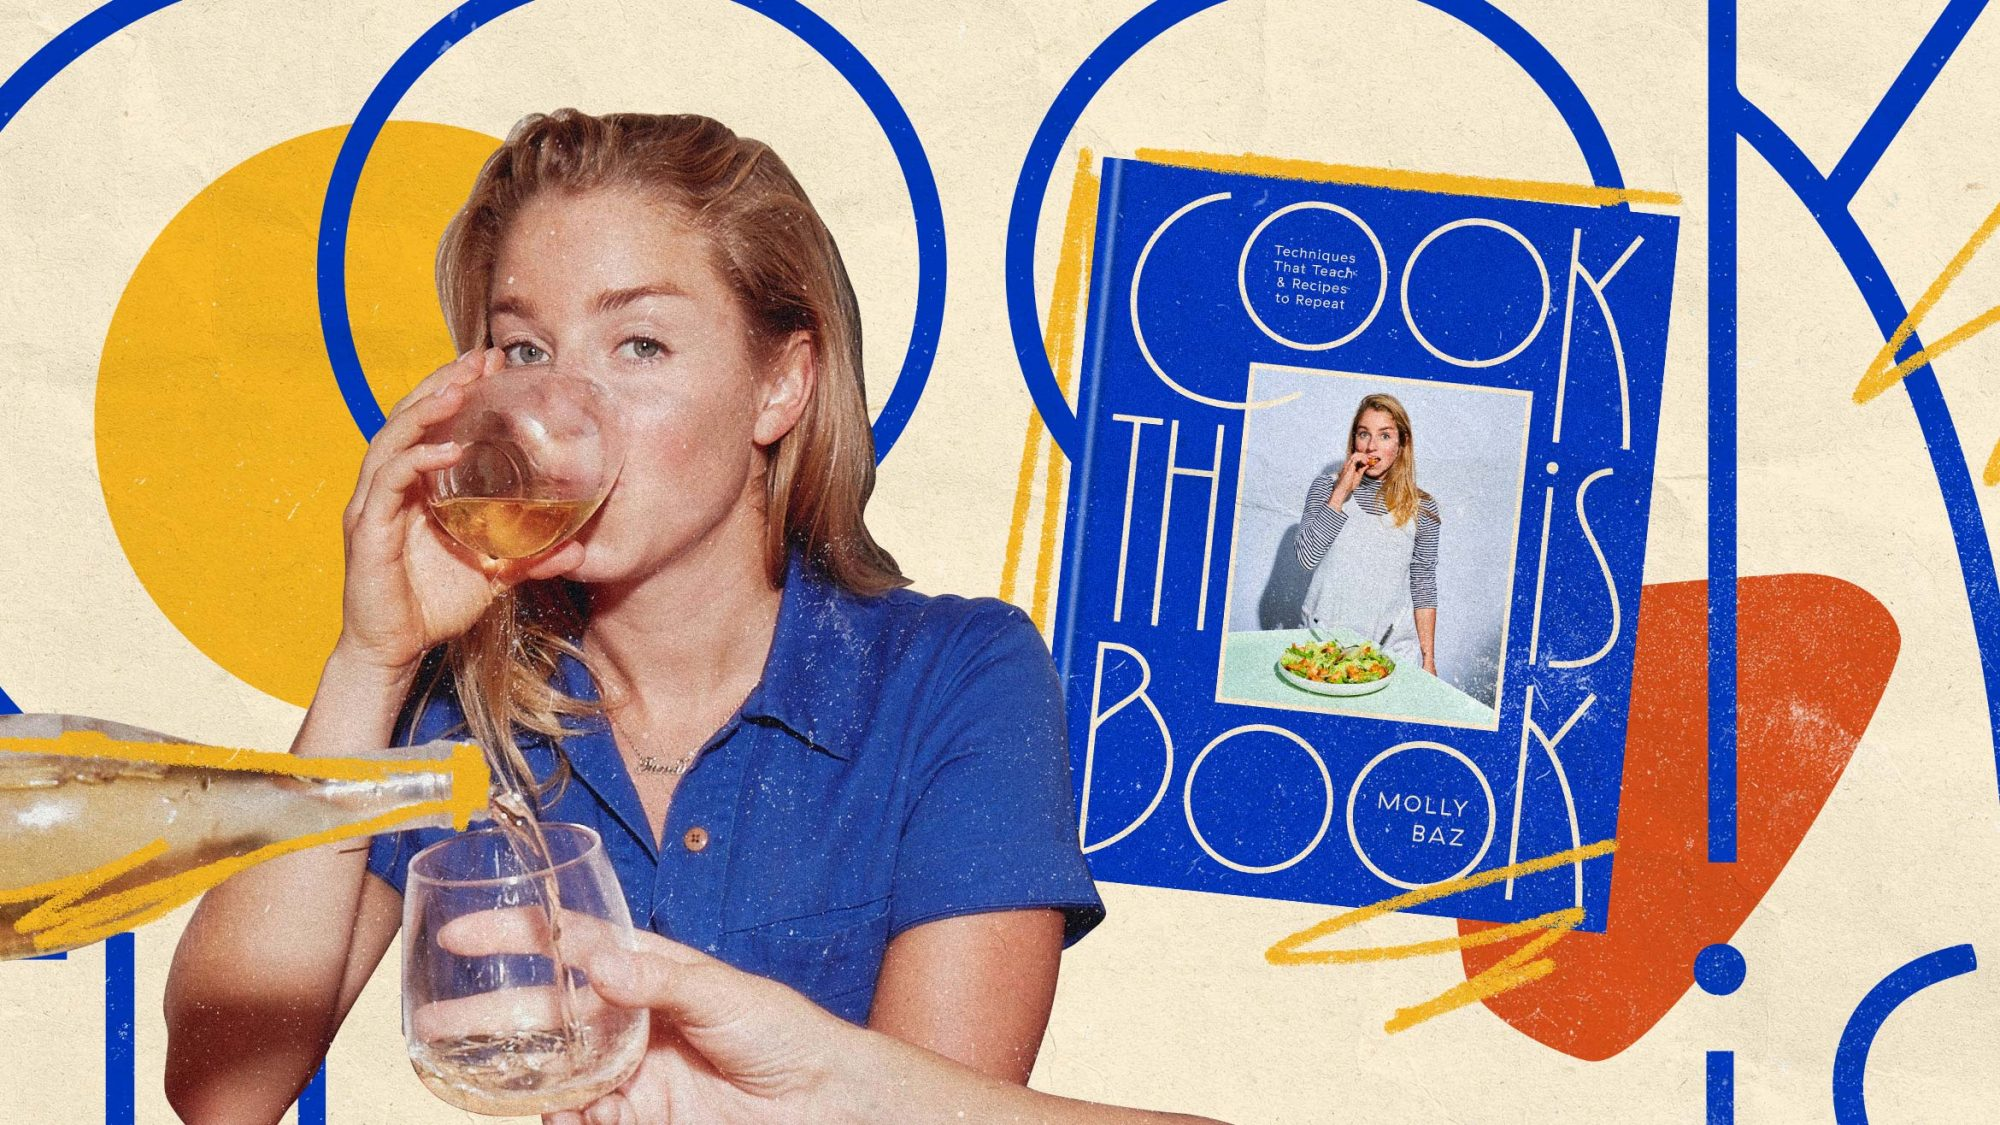 Article-Molly-Baz-Cook-This-Book